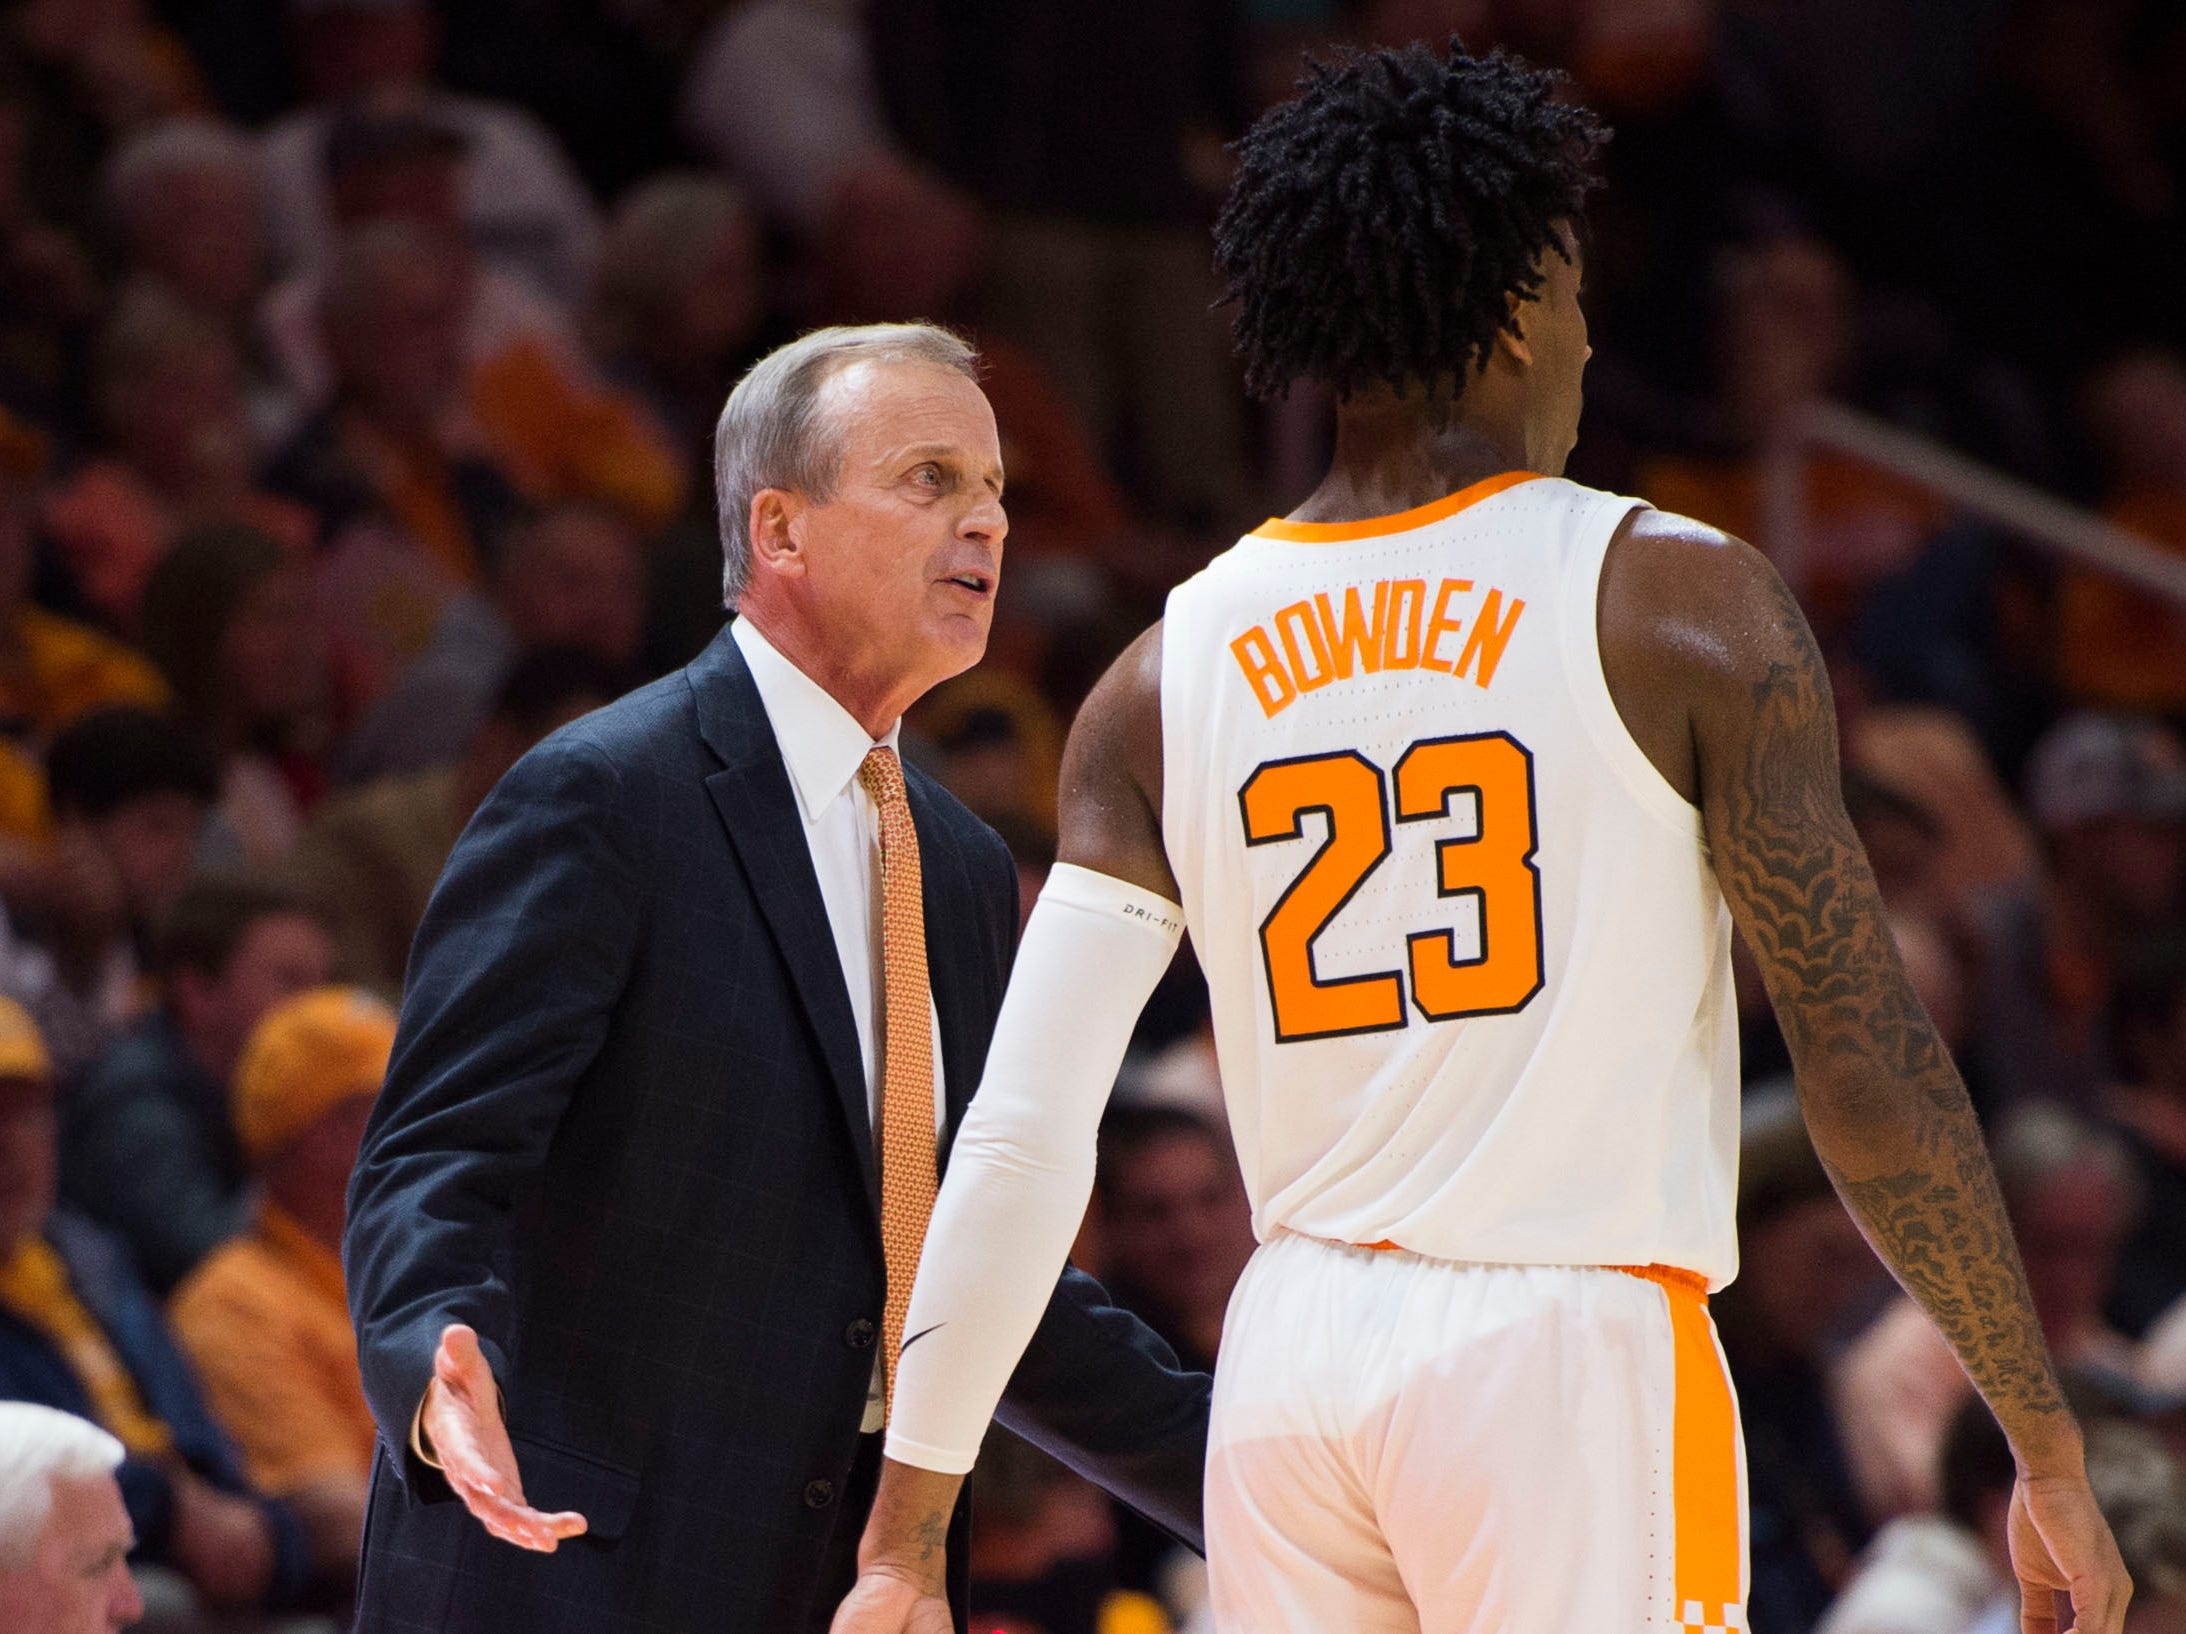 Tennessee head coach Rick Barnes speaks to Tennessee's Jordan Bowden (23) on the sidelines during a game between Tennessee and Louisiana in Thompson-Boling Arena Friday, Nov. 9, 2018. Tennessee defeated Louisiana 87-65.